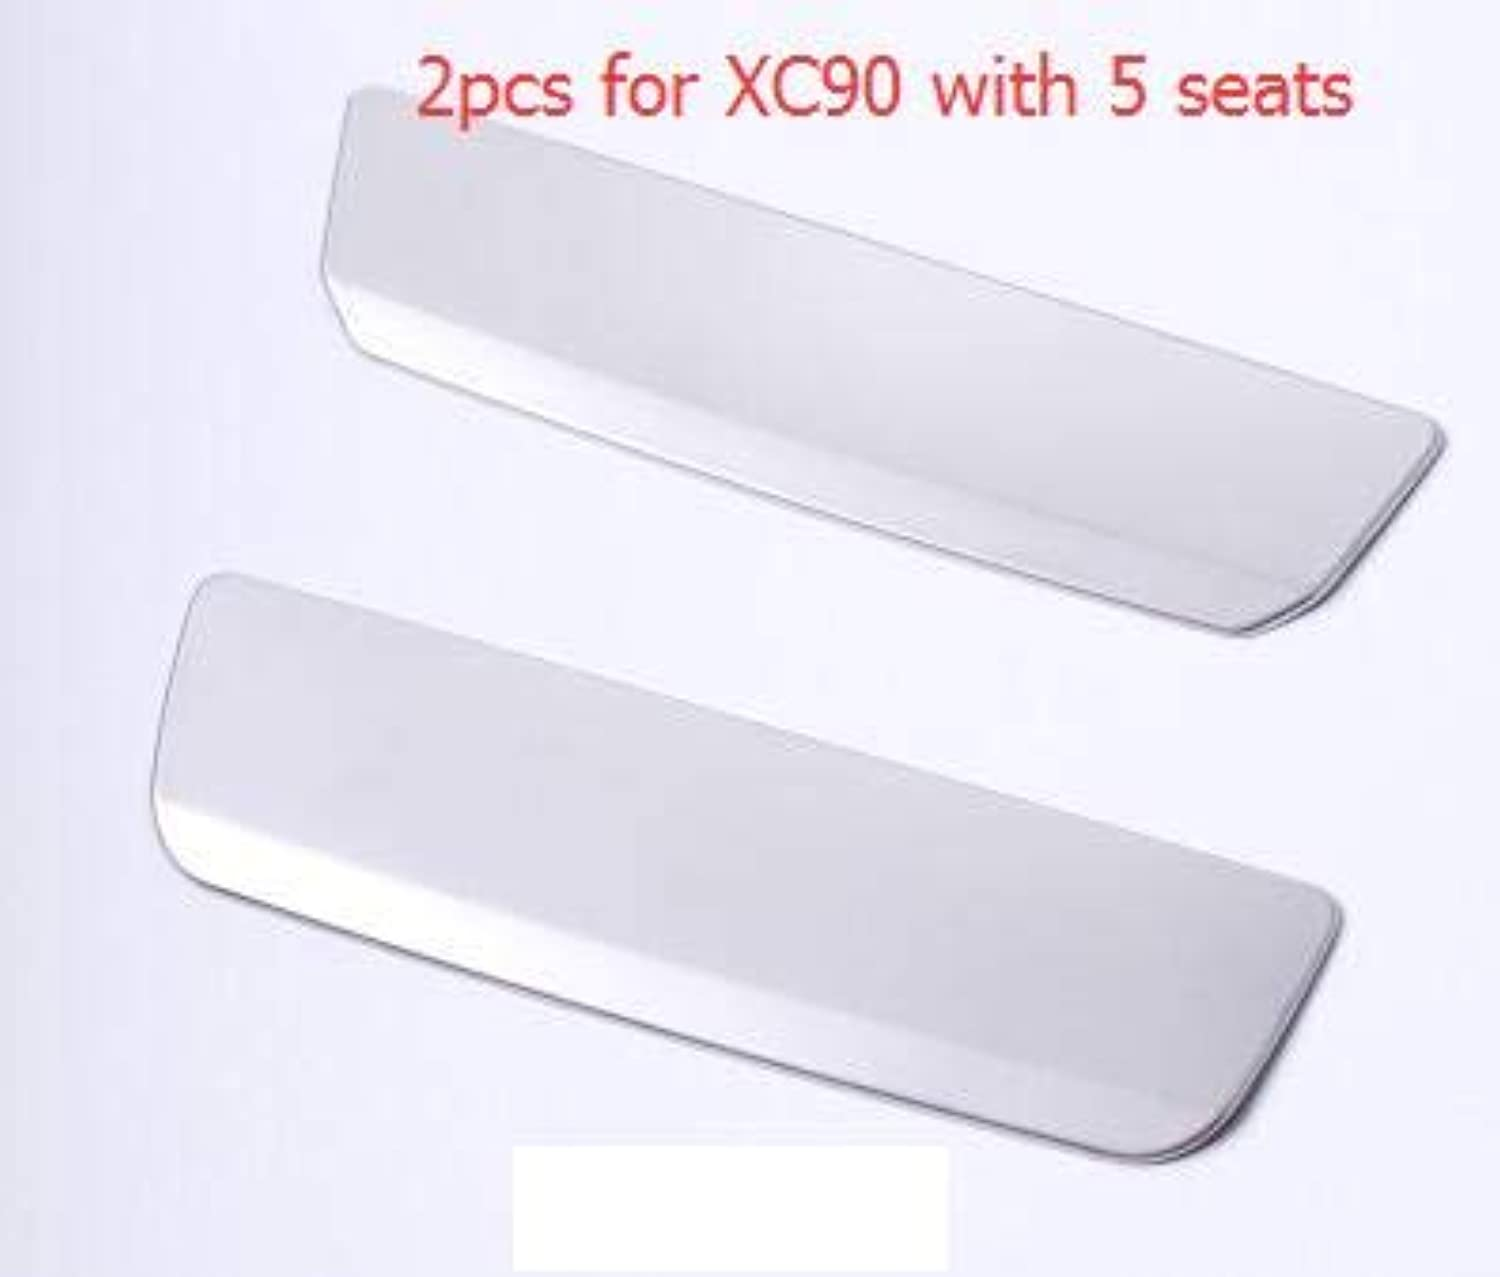 For Volvo 20152018 XC90 Car Styling Interior Car Trunk Handle Cover Stainless Steel Sticker Silver Car Accessories Two Options  2 pcs for 5 Seats